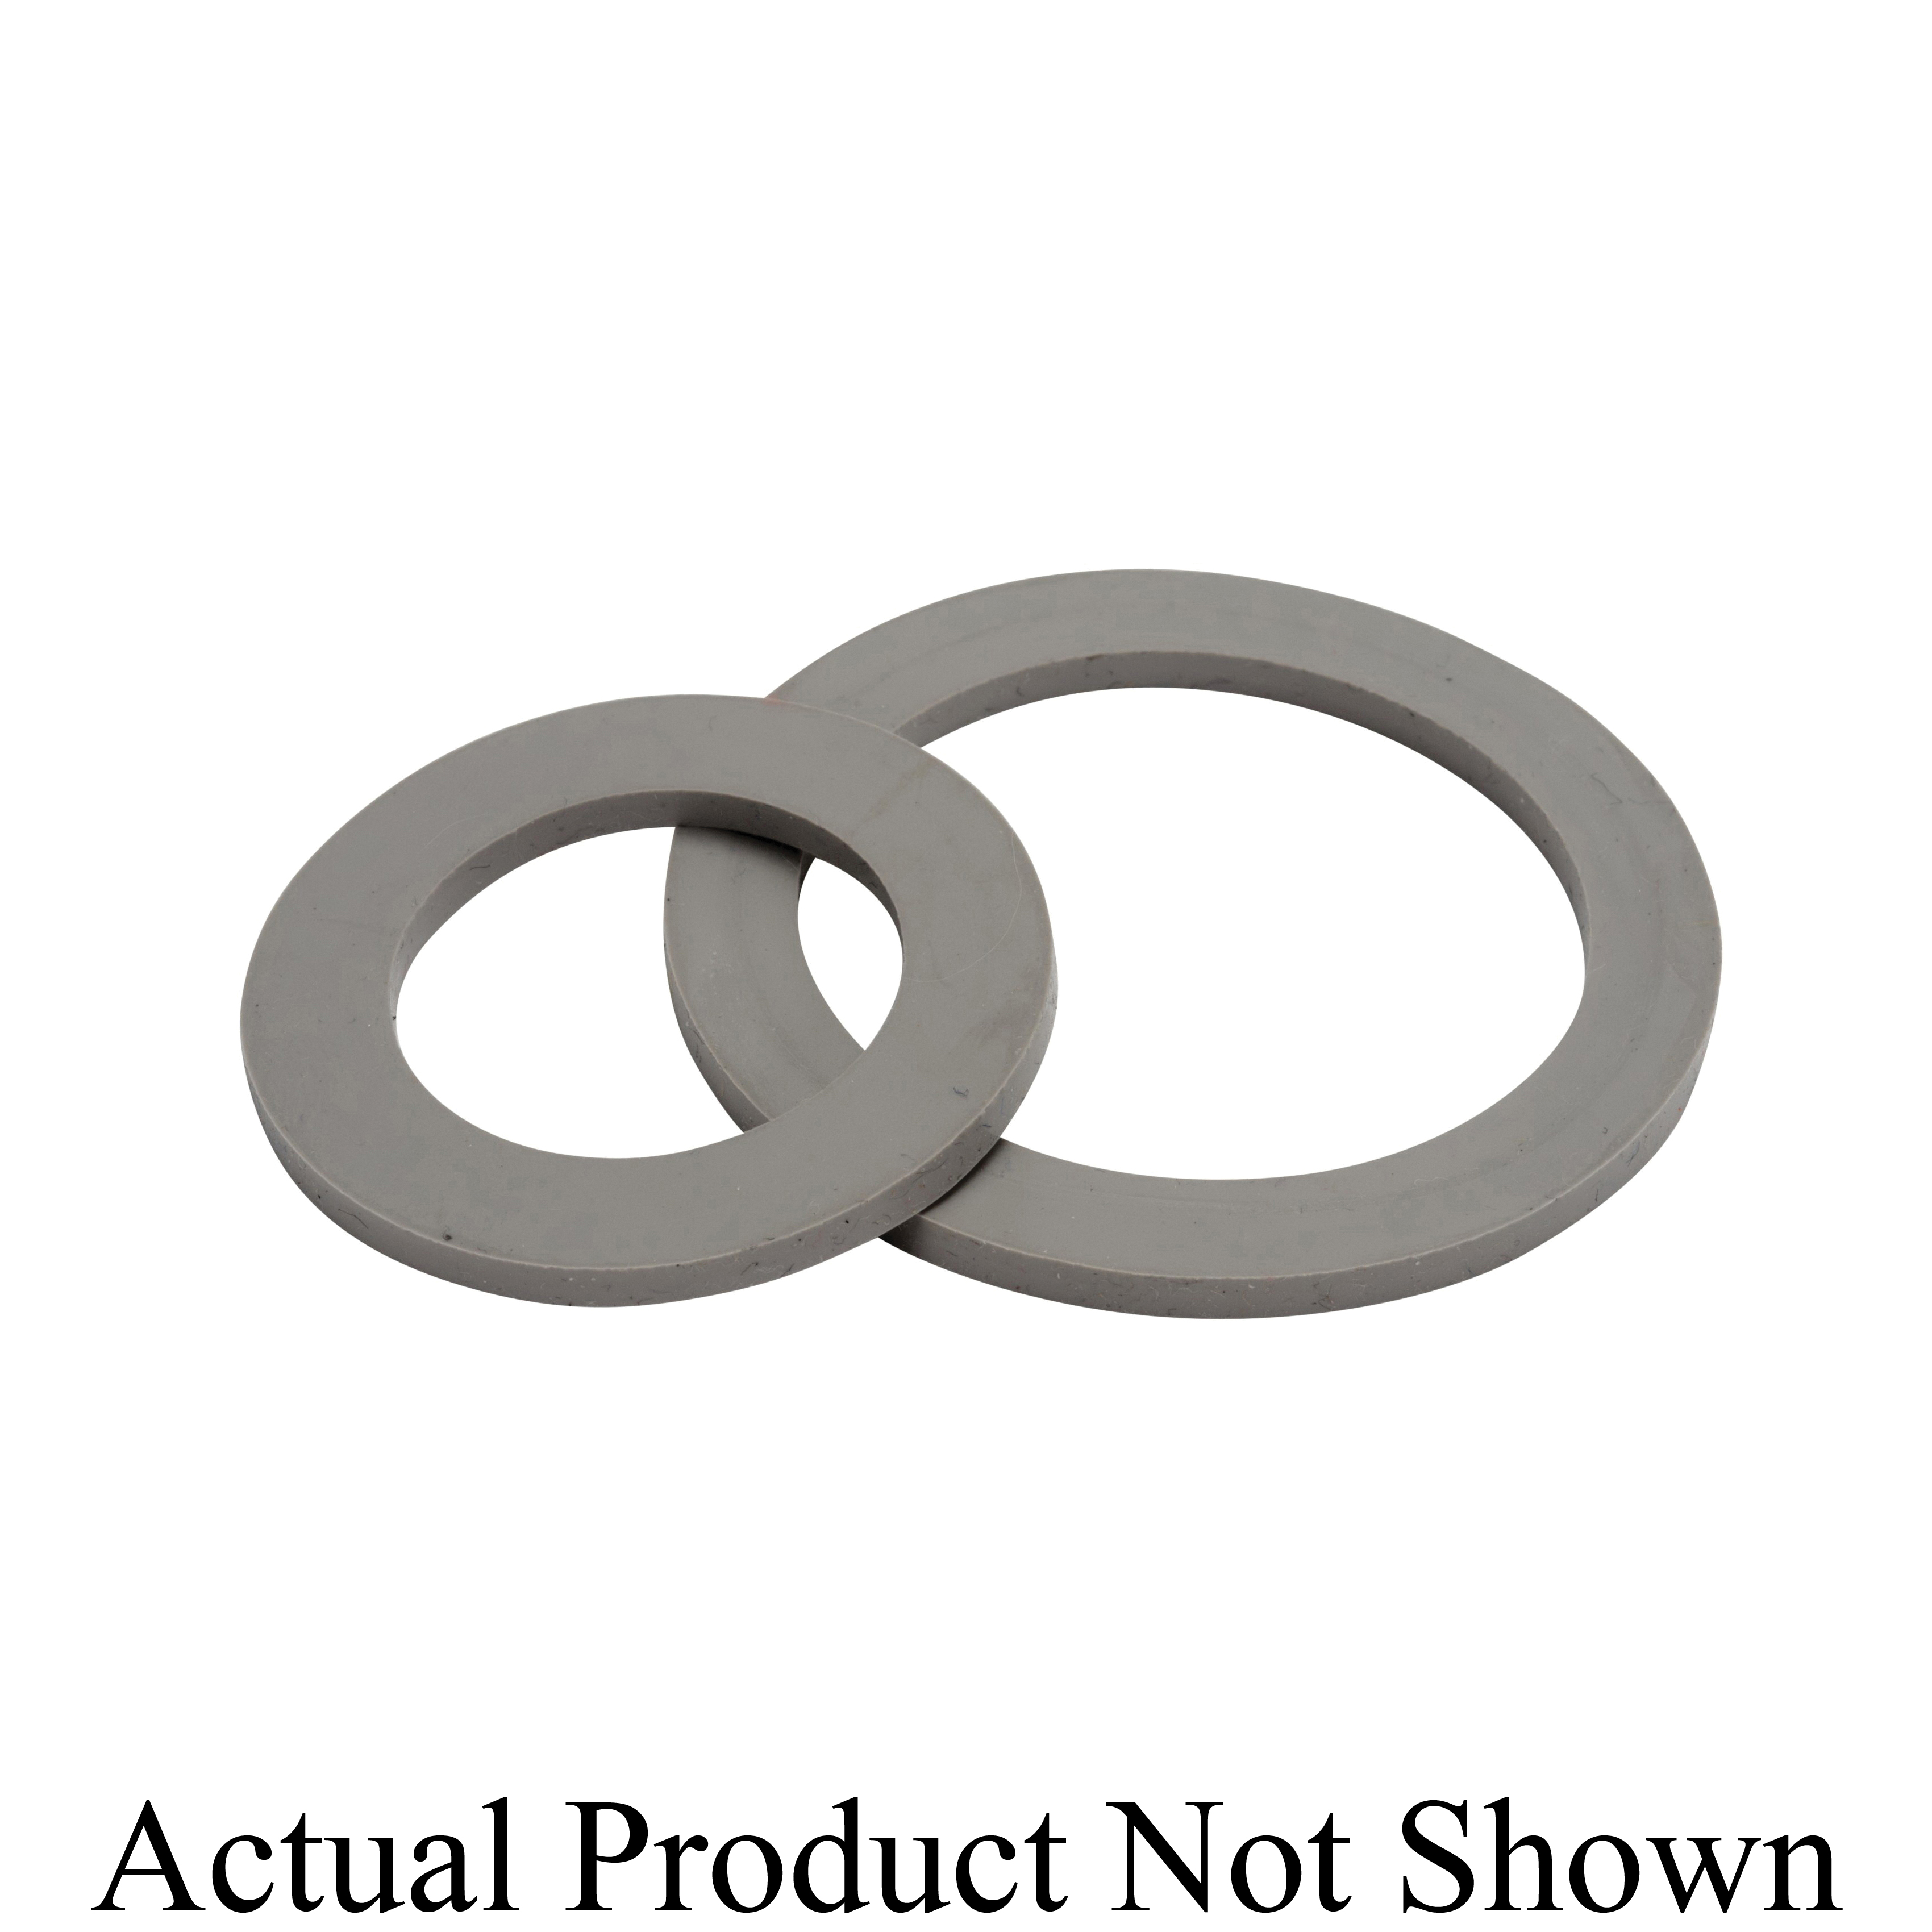 3M™ 051131-07145 Inhalation Replacement Gasket, For Use With 6000 Series Half Facepiece Respirators, Orange